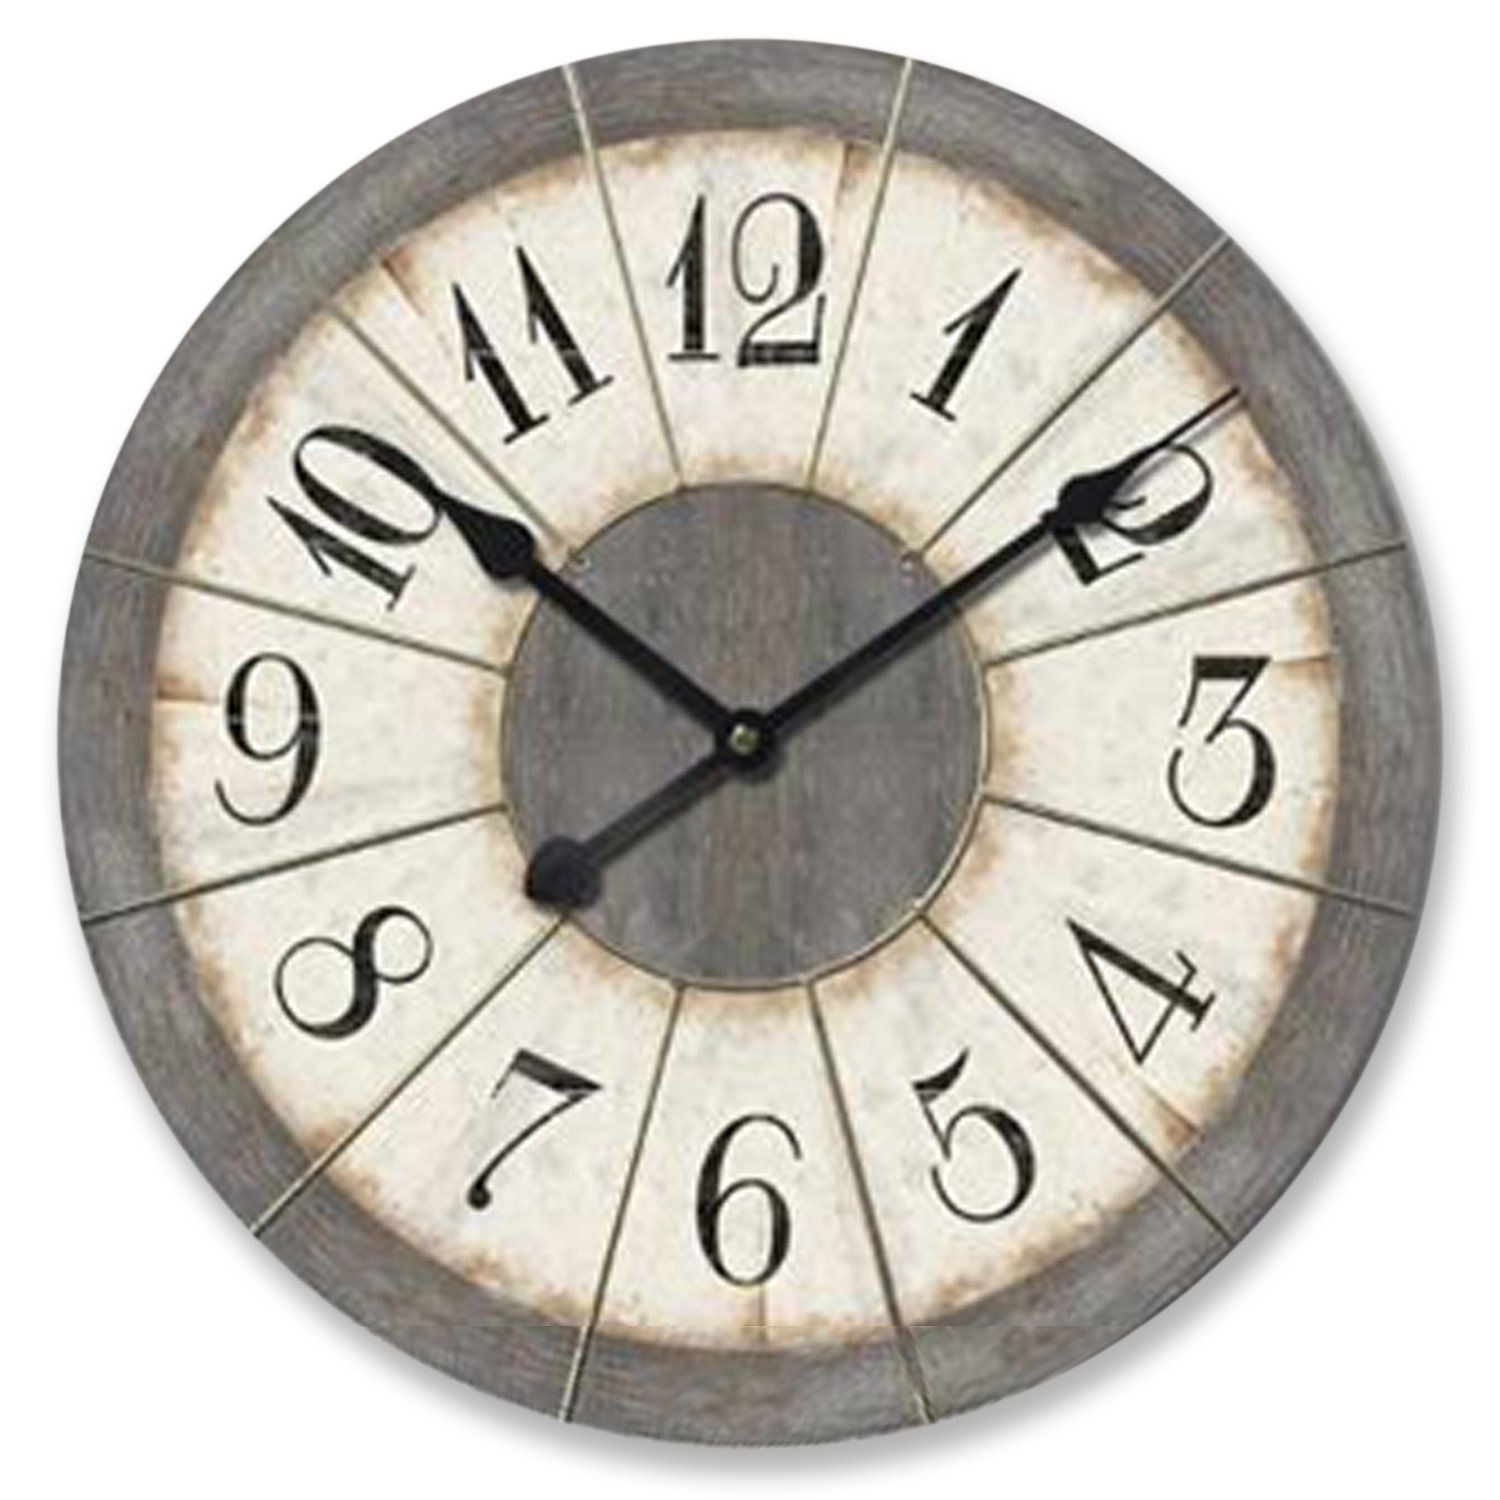 Huge Wall Clocks Stylish Large Wall Clocks Fun And Fashionable Home